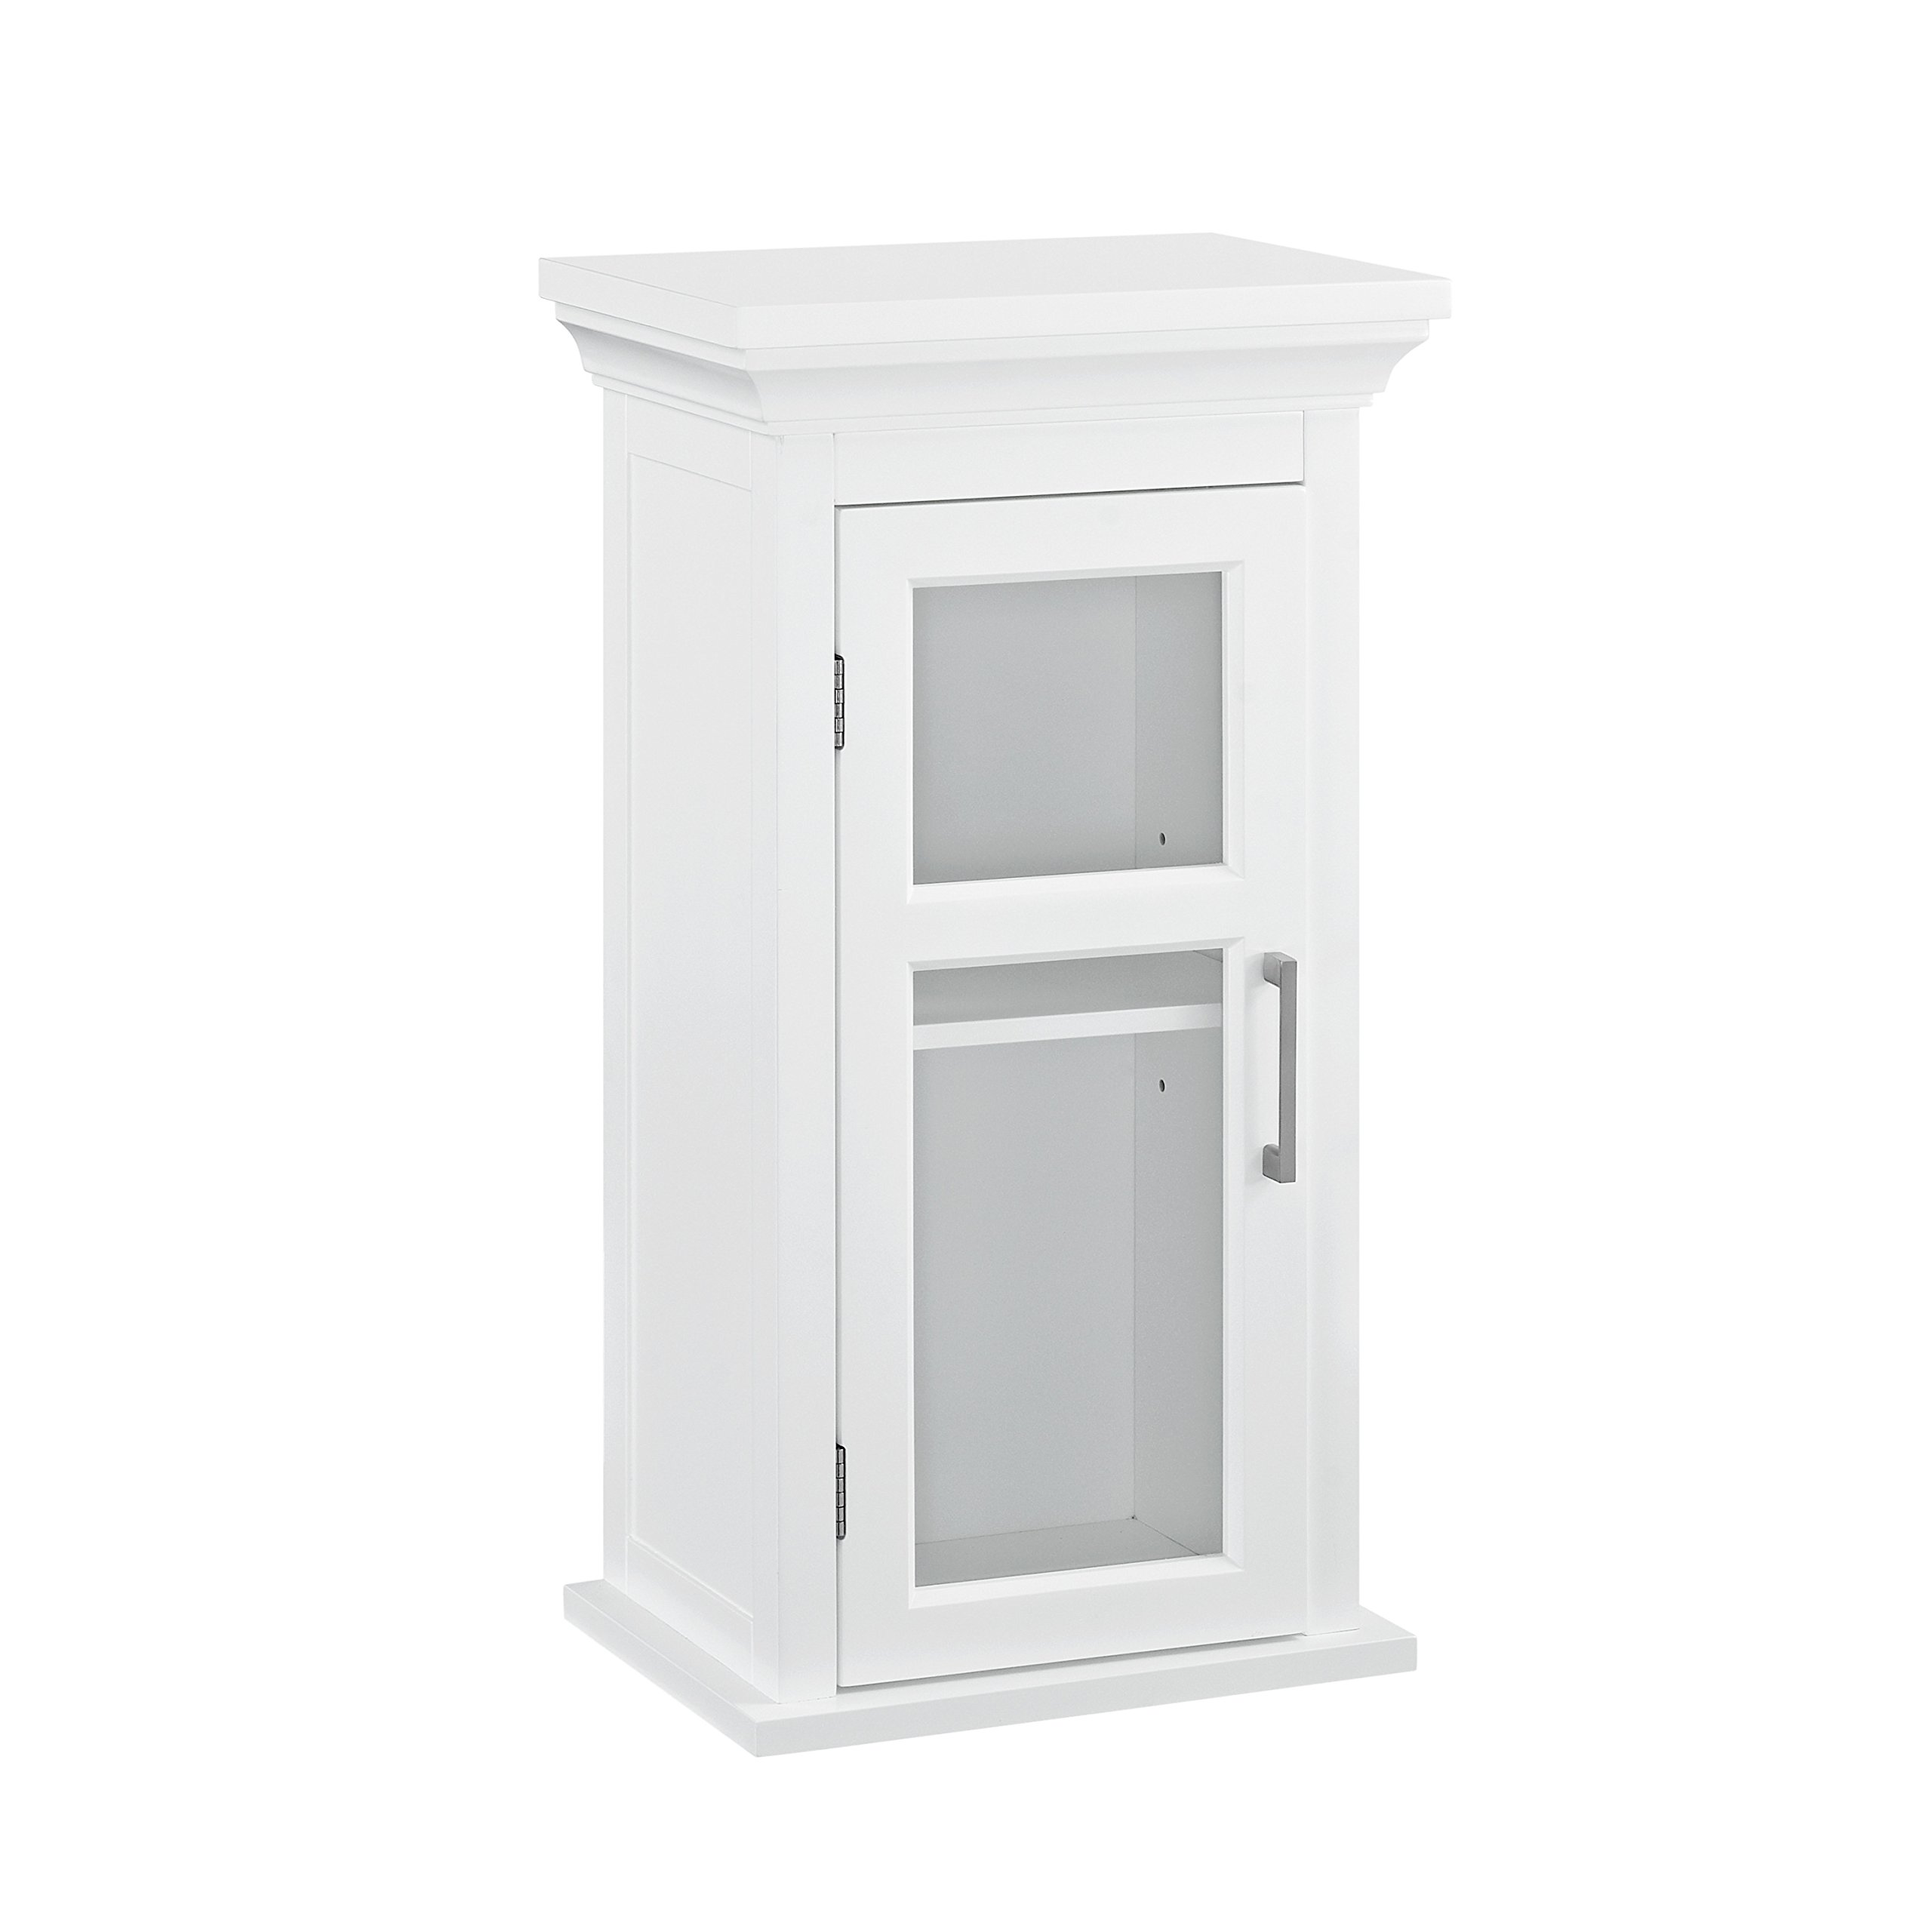 Simpli Home Avington Single Door Wall Cabinet, White